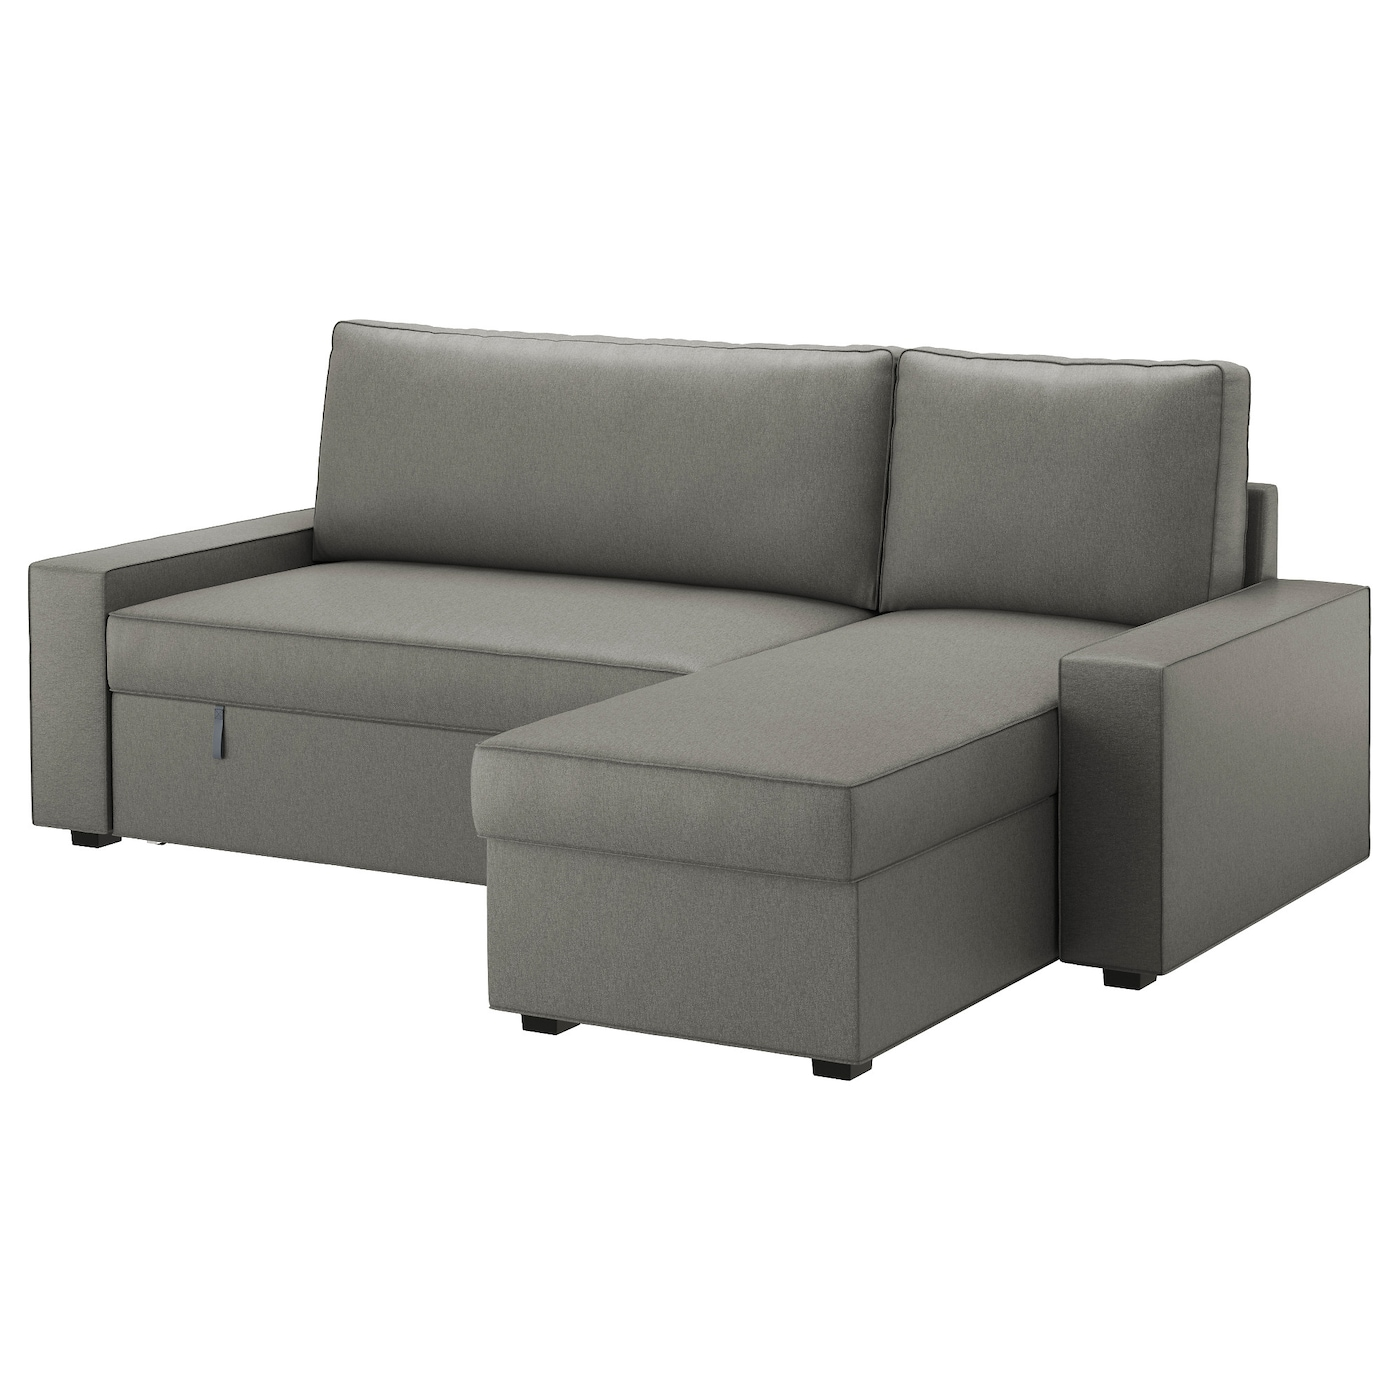 Sofa beds futons ikea for Sofa bed chair